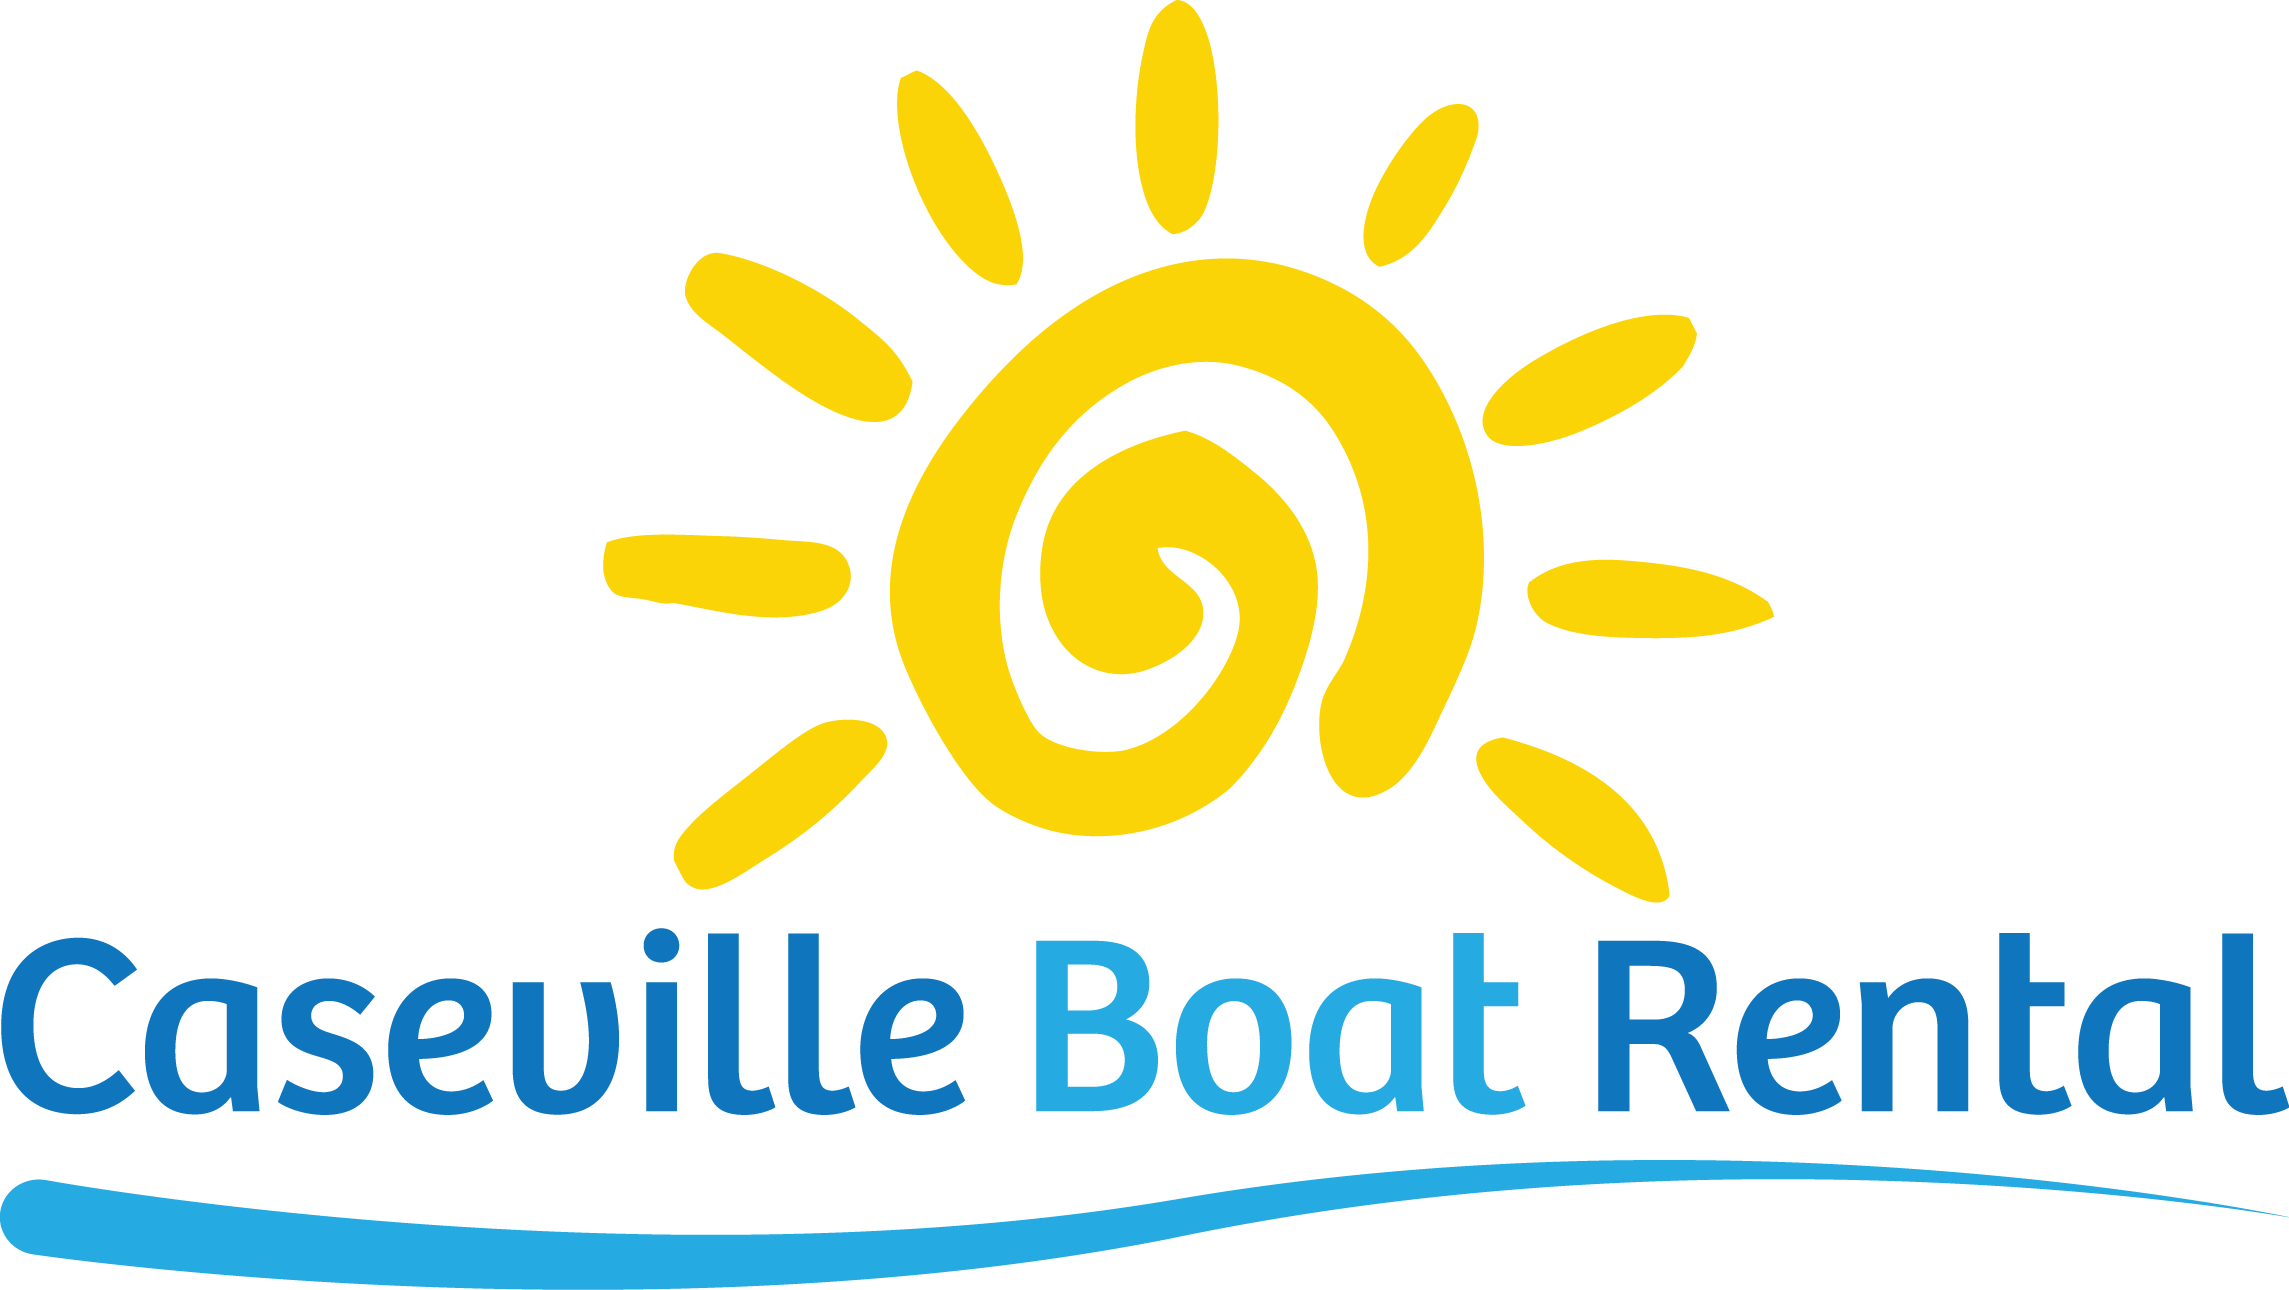 Caseville Boat Rental